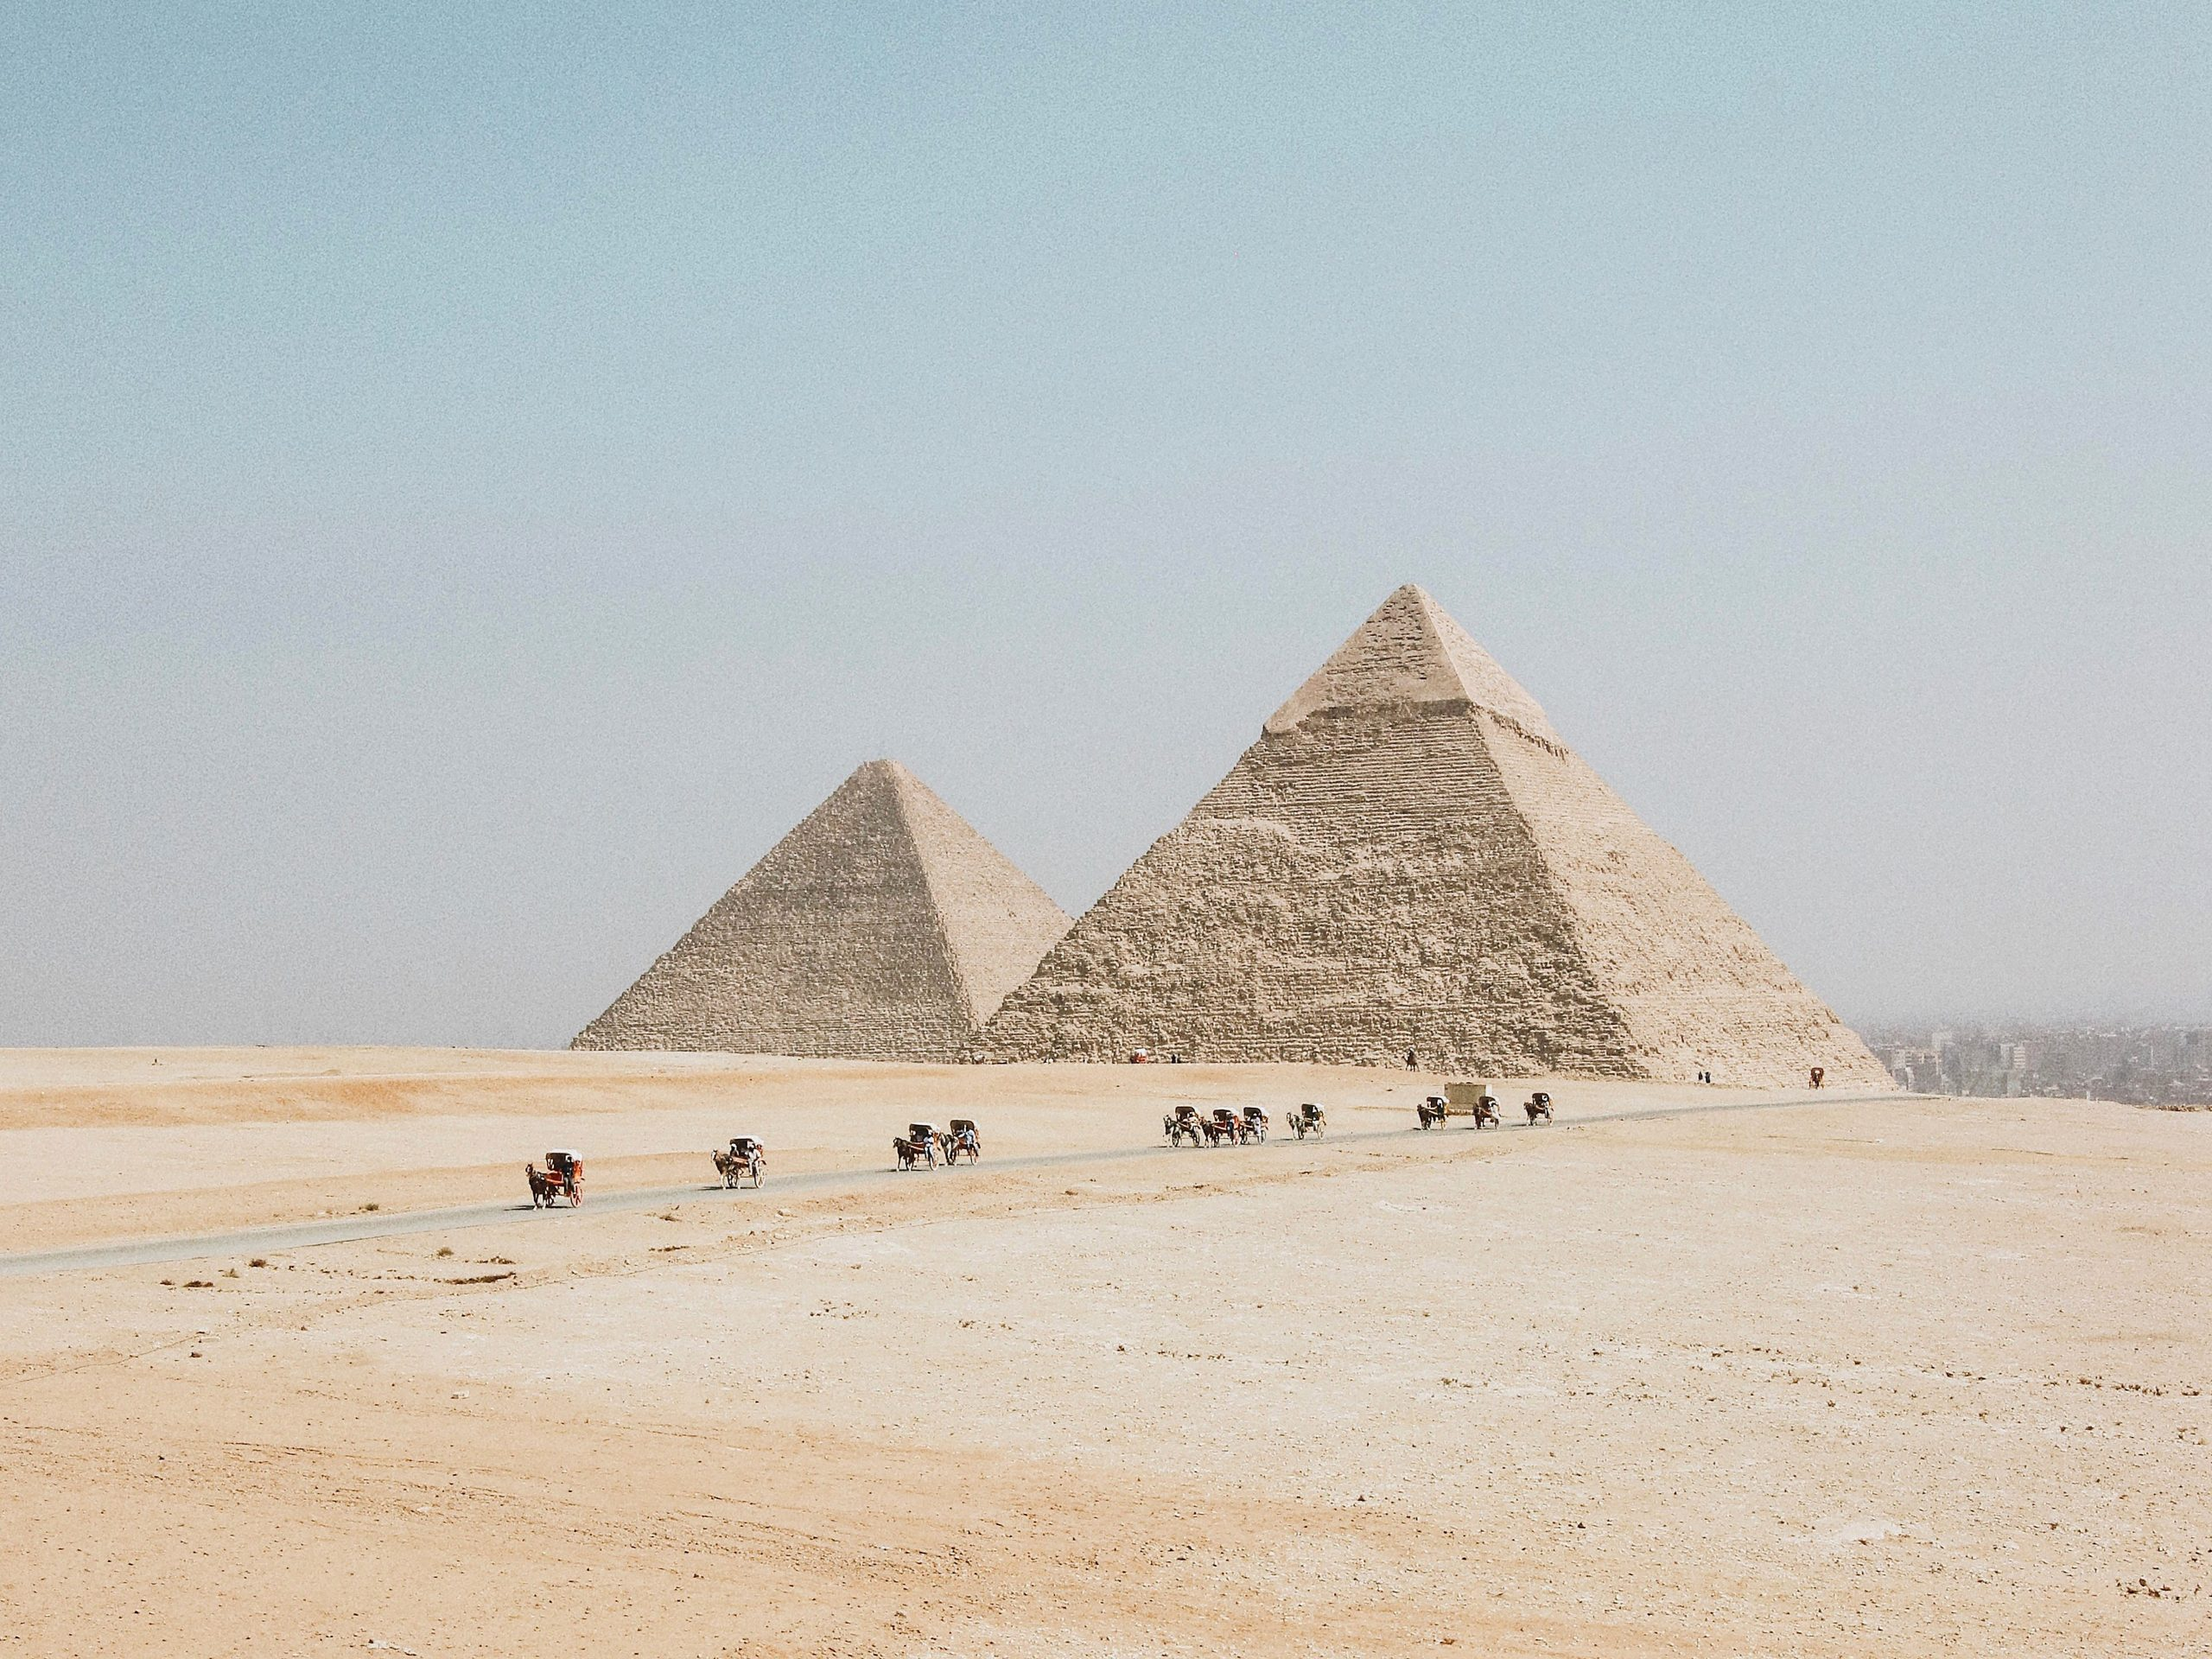 stone pyramids in desert, people and camels traveling on dirt road below